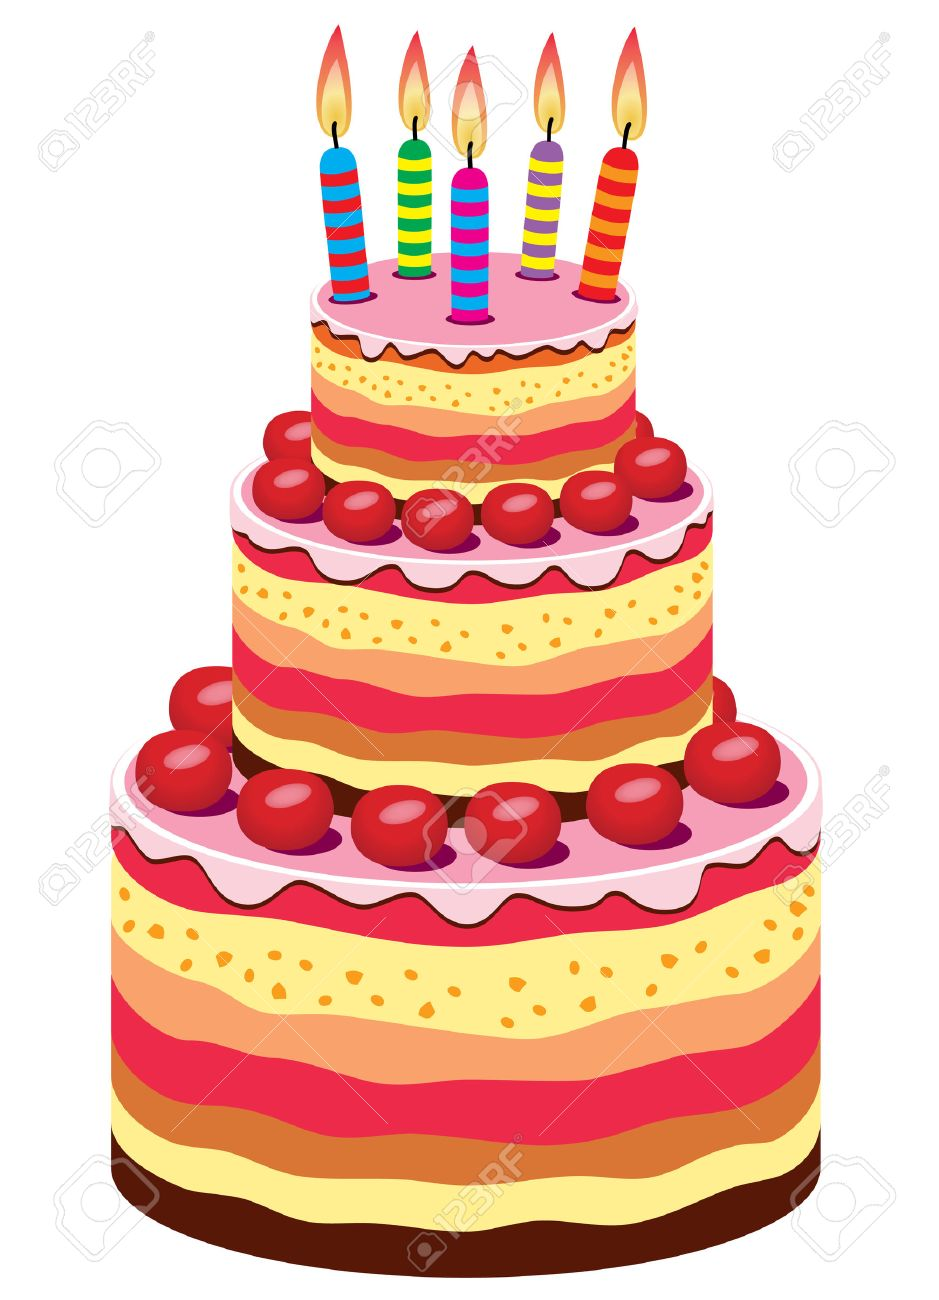 Big Birthday Cake With Burning Candles And Fruits Royalty Free